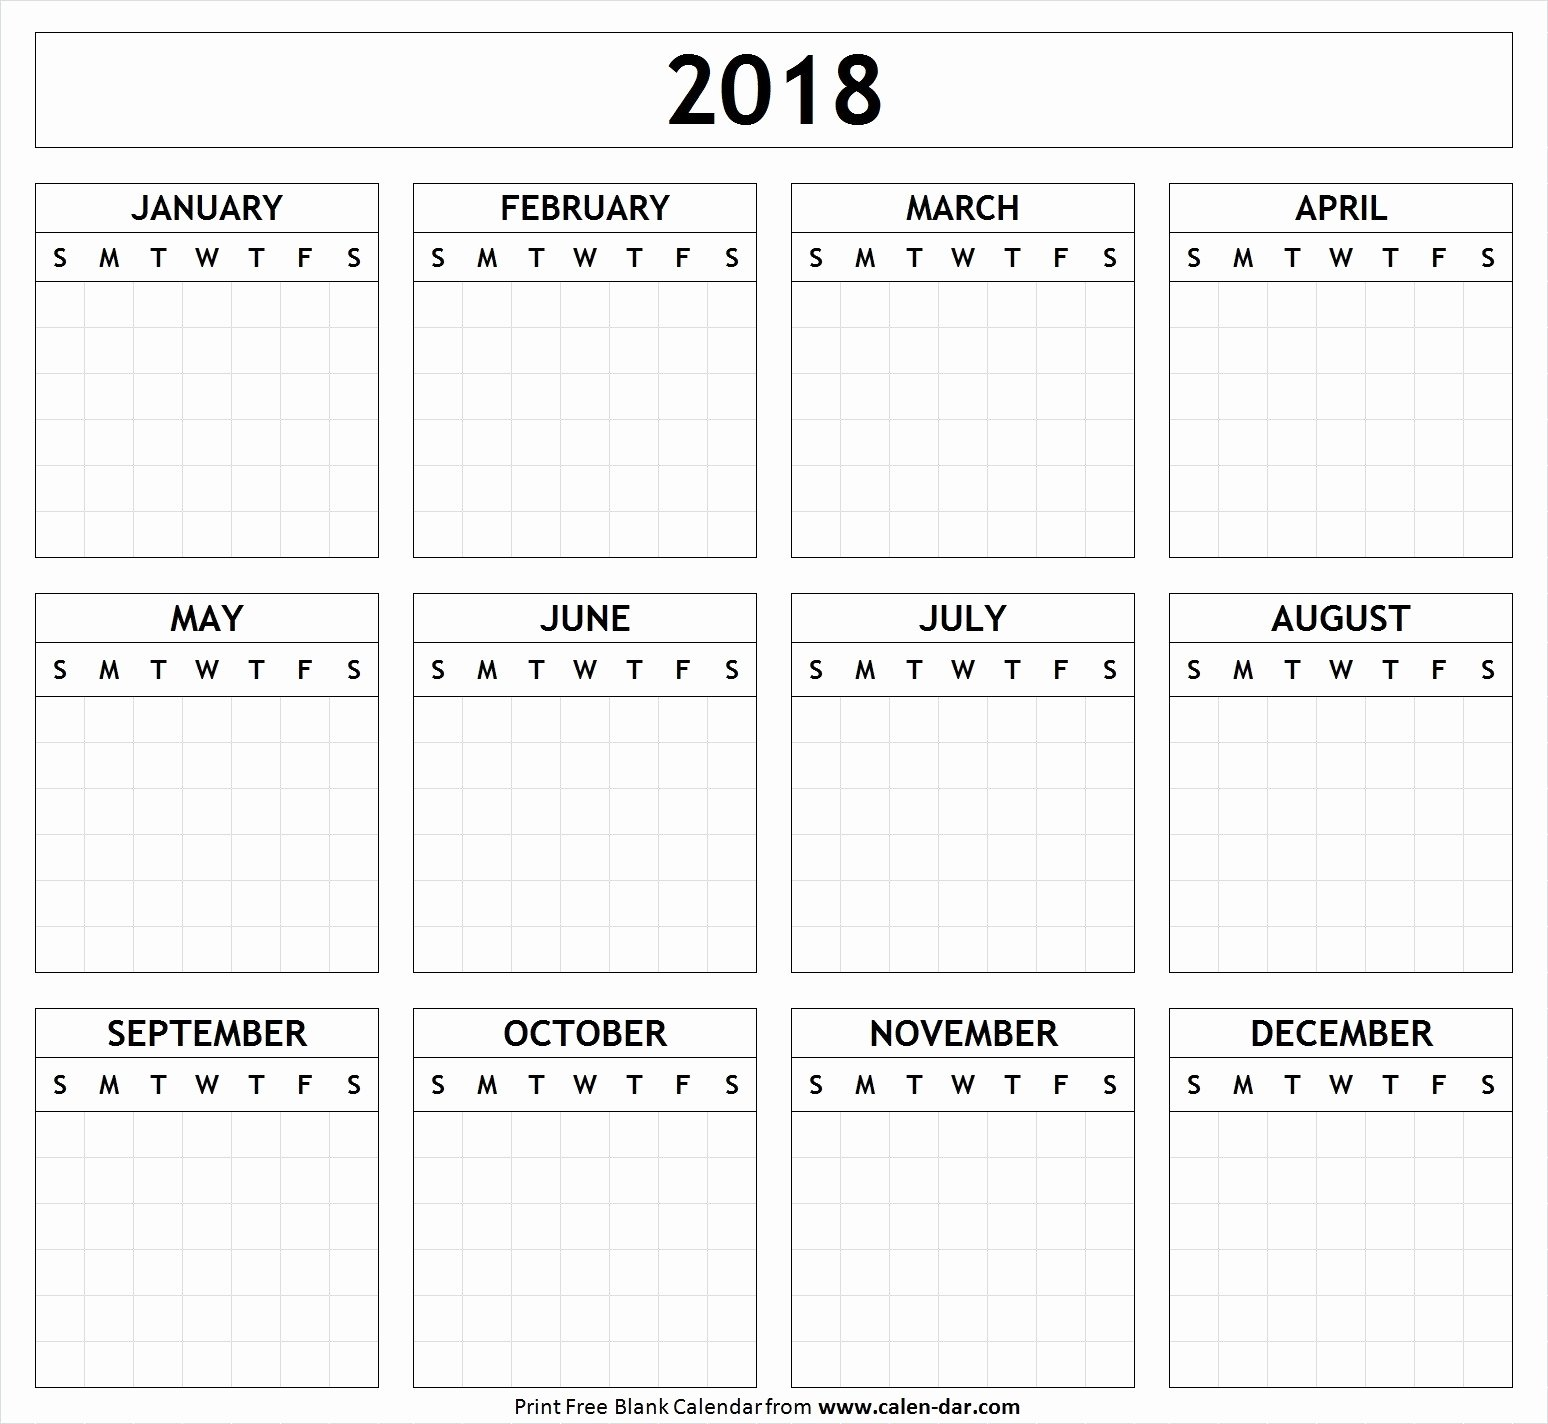 Calendar Template for Pages Mac New Mac Numbers Templates Small Business